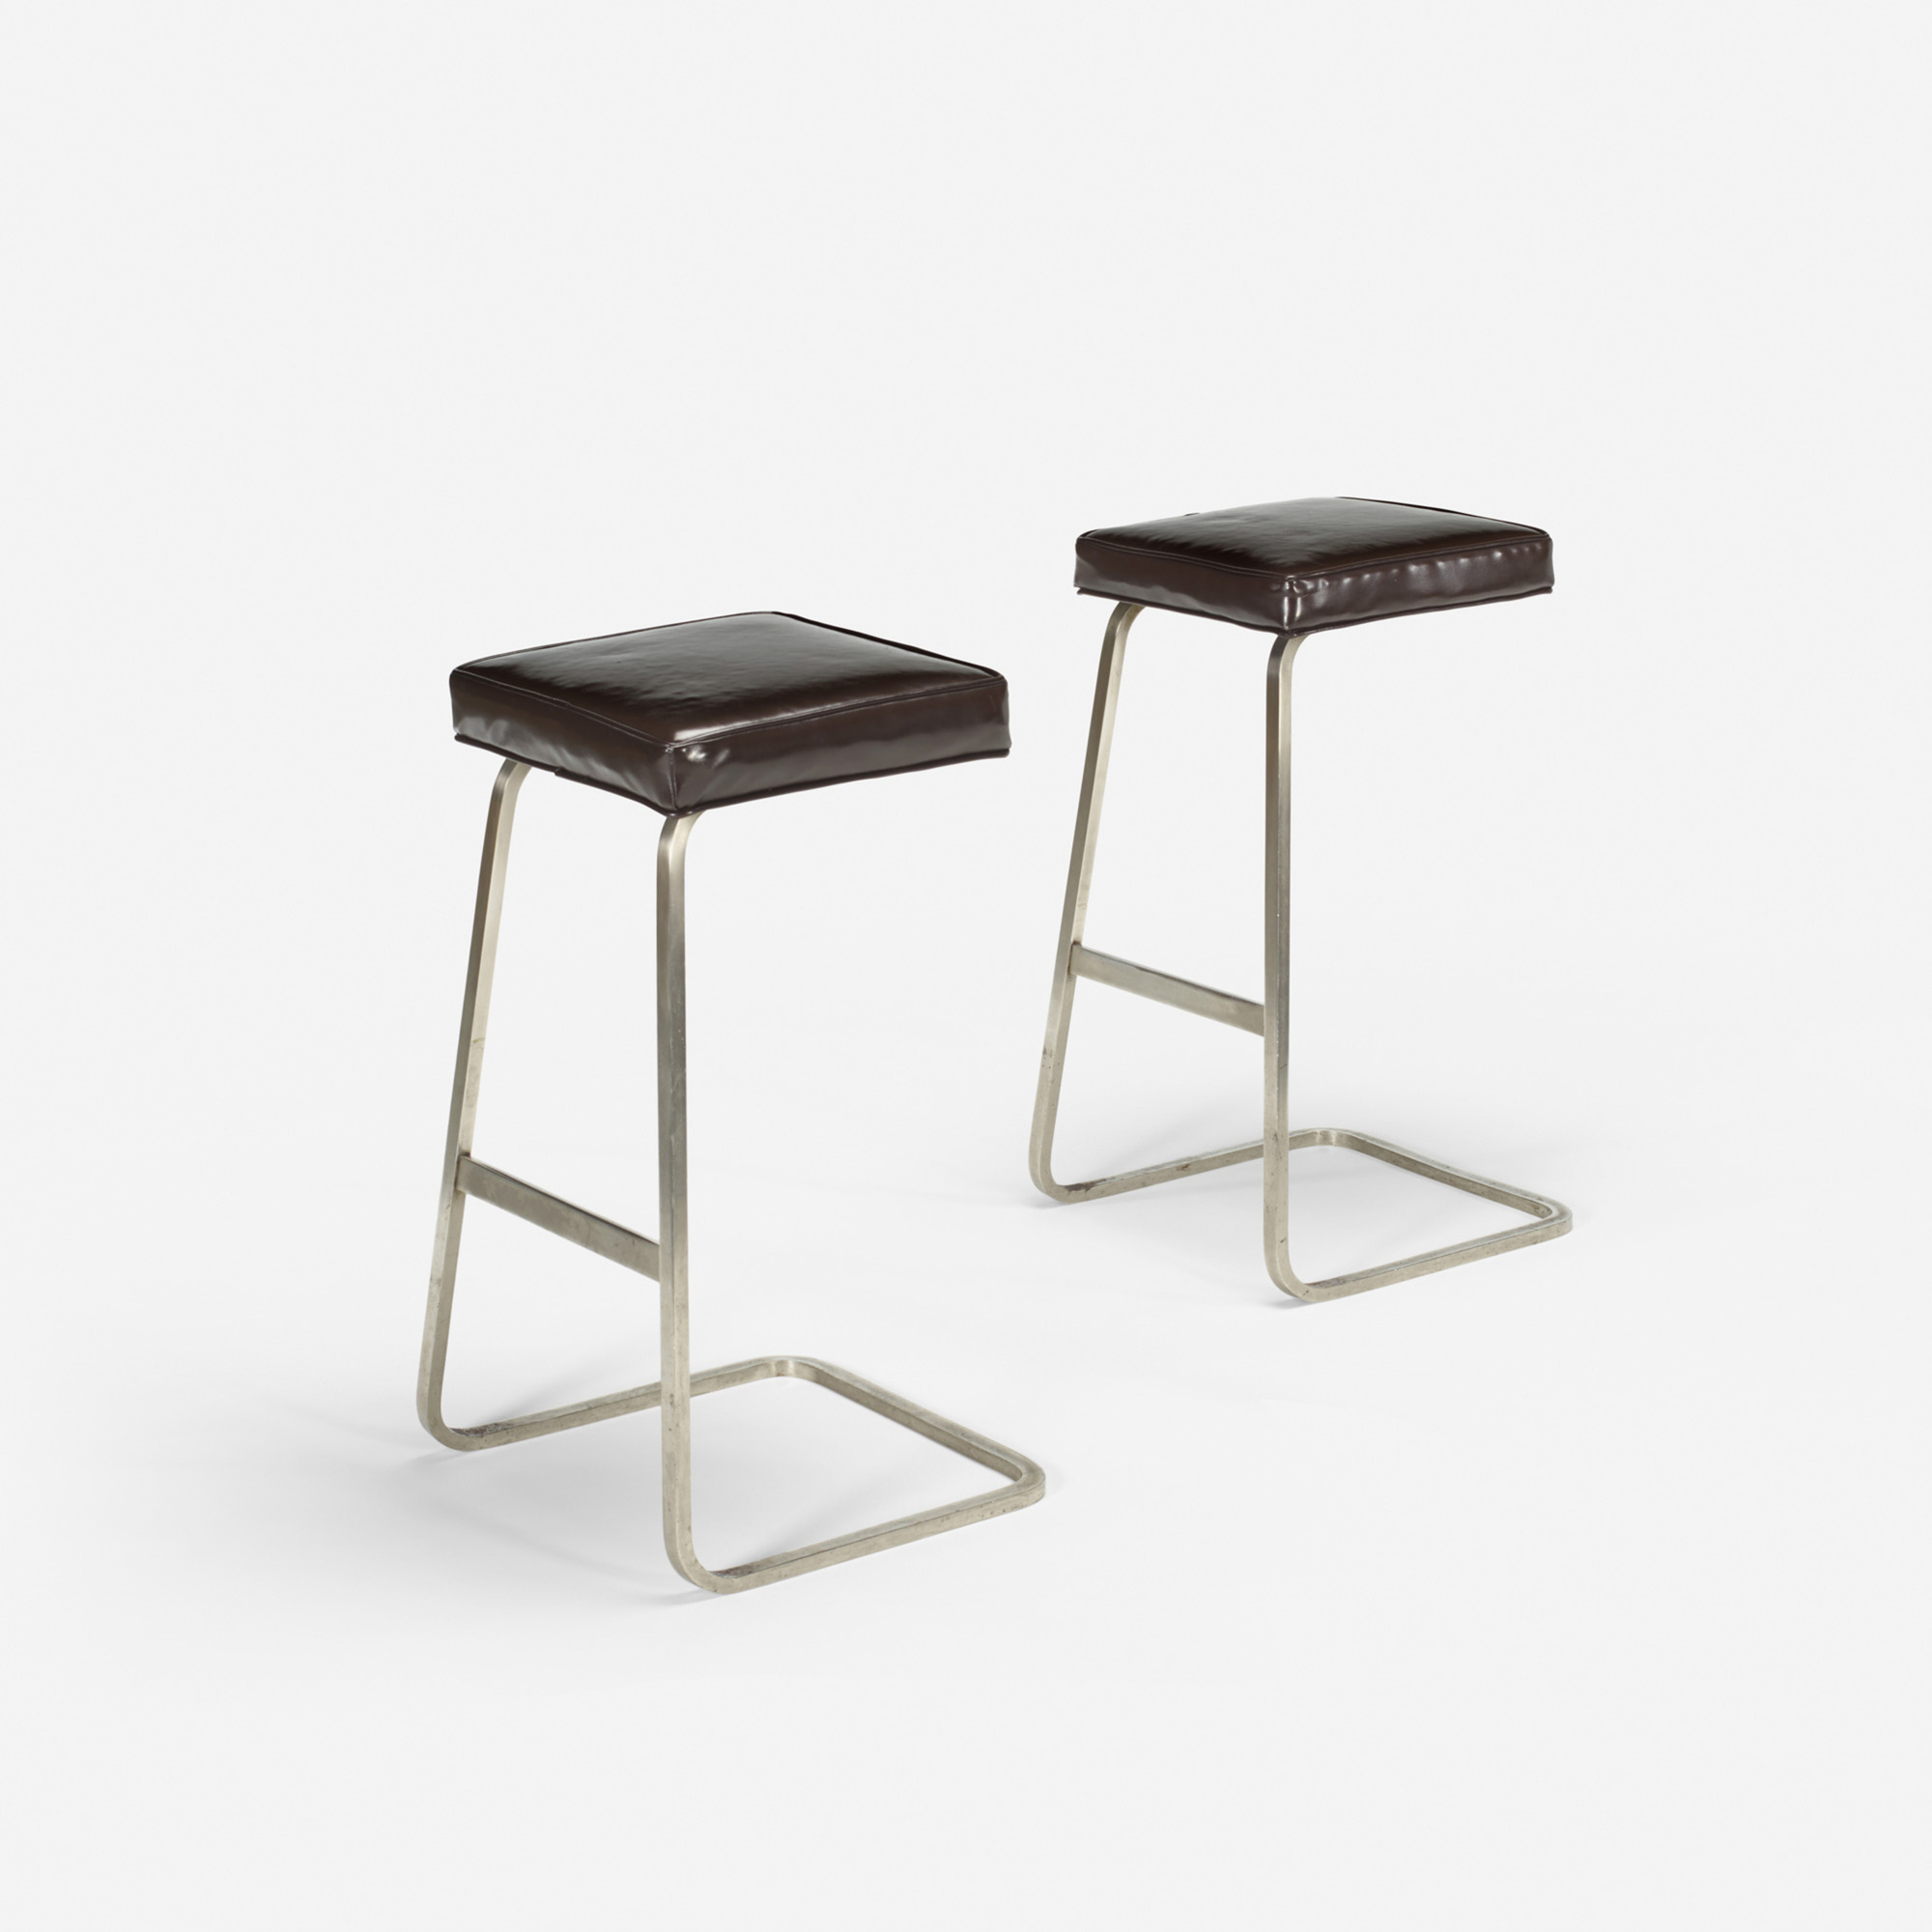 120: Ludwig Mies van der Rohe with Philip Johnson / Four Seasons bar stools from the Grill Room, pair (1 of 1)